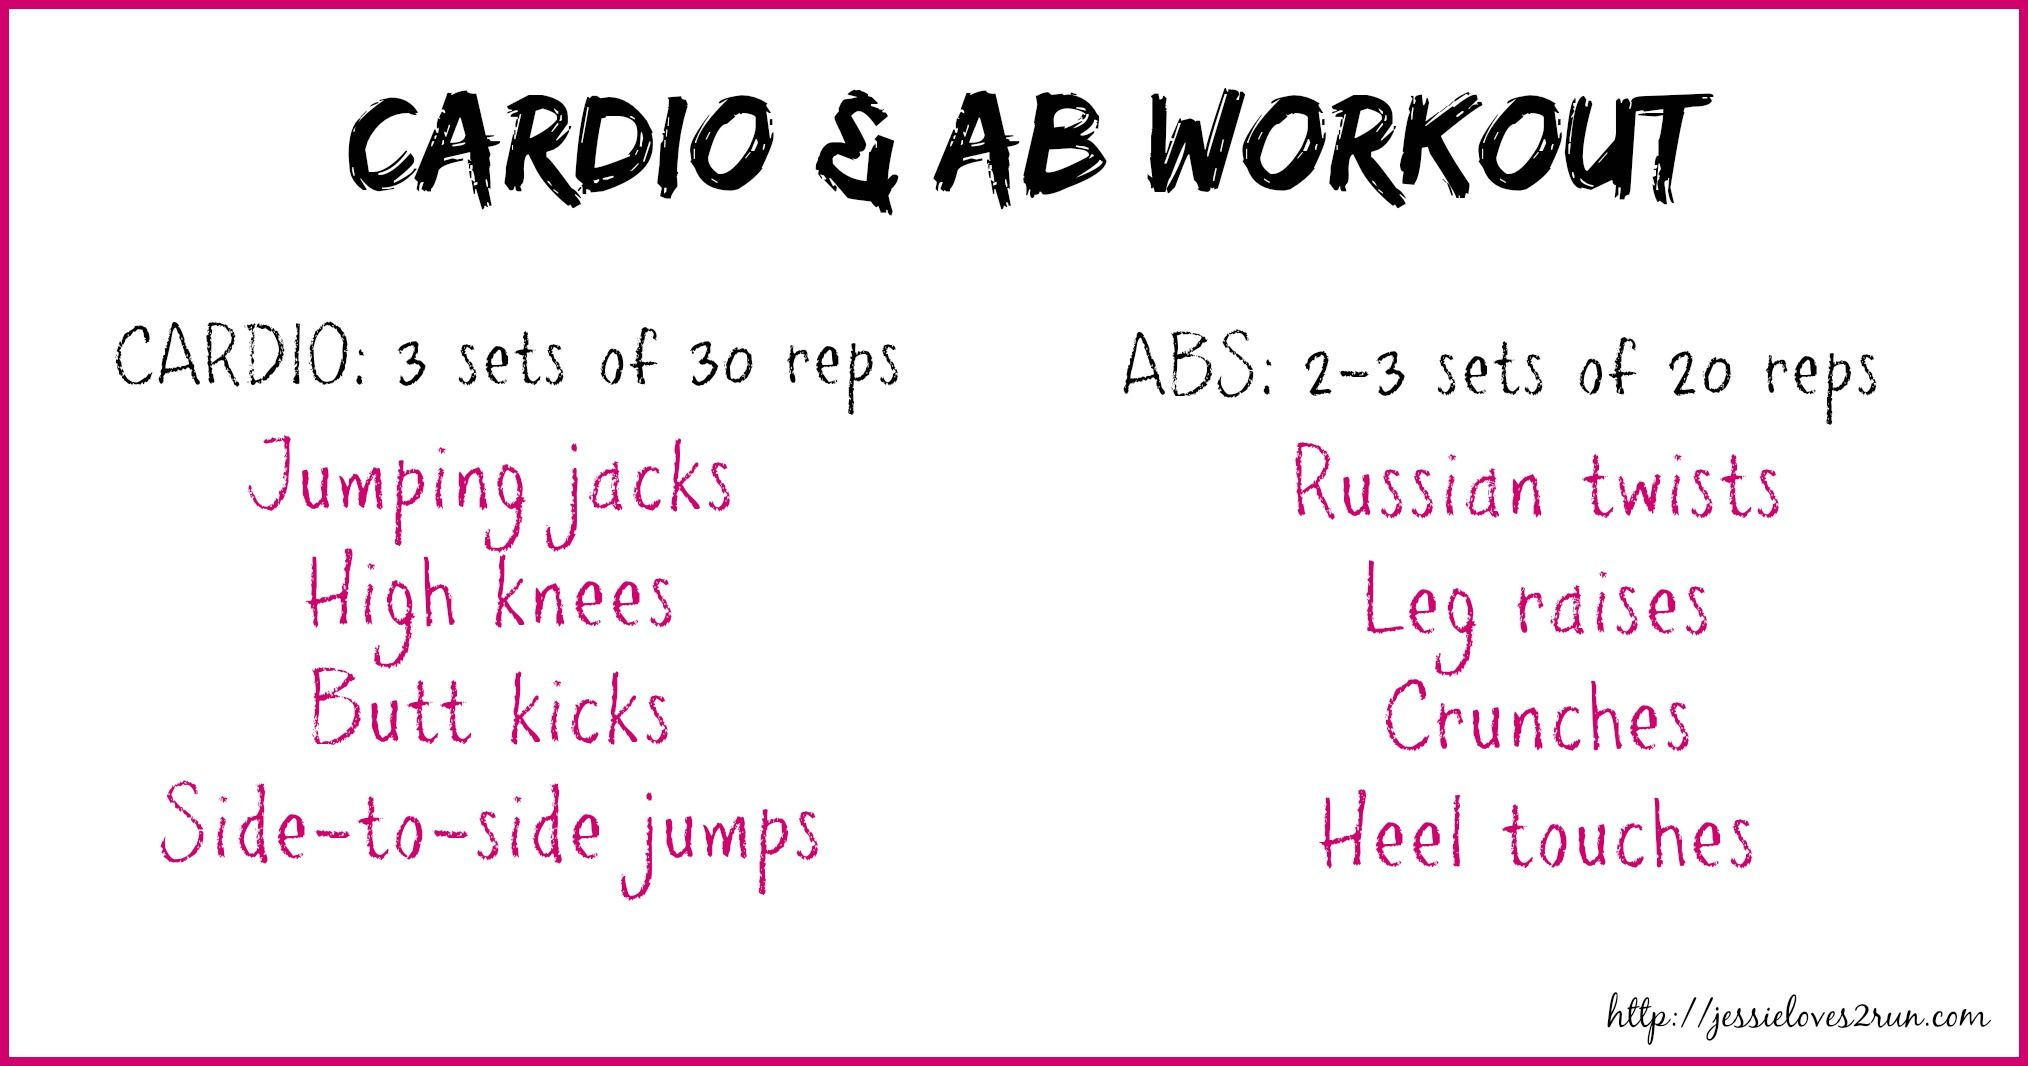 Cardio & Abs Workout #fitness #cardio #abs #workout #getfit #fitfluential #sweatpink